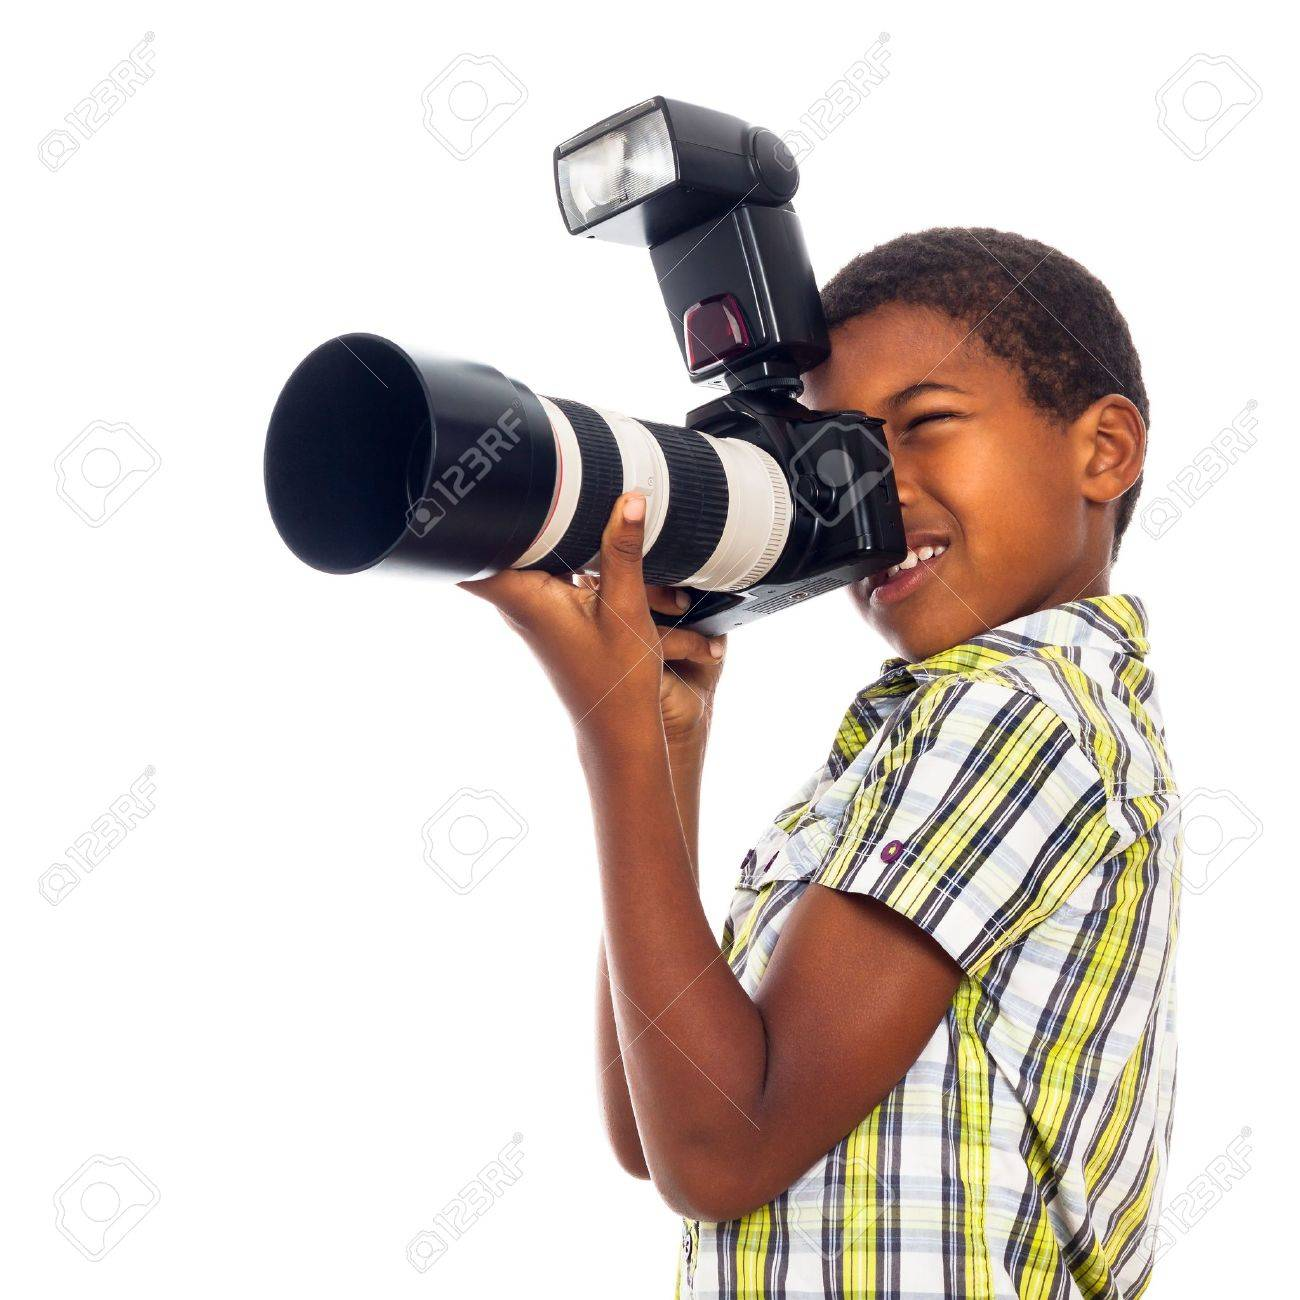 Child school boy taking photos with professional camera, isolated on white background. - 16959457